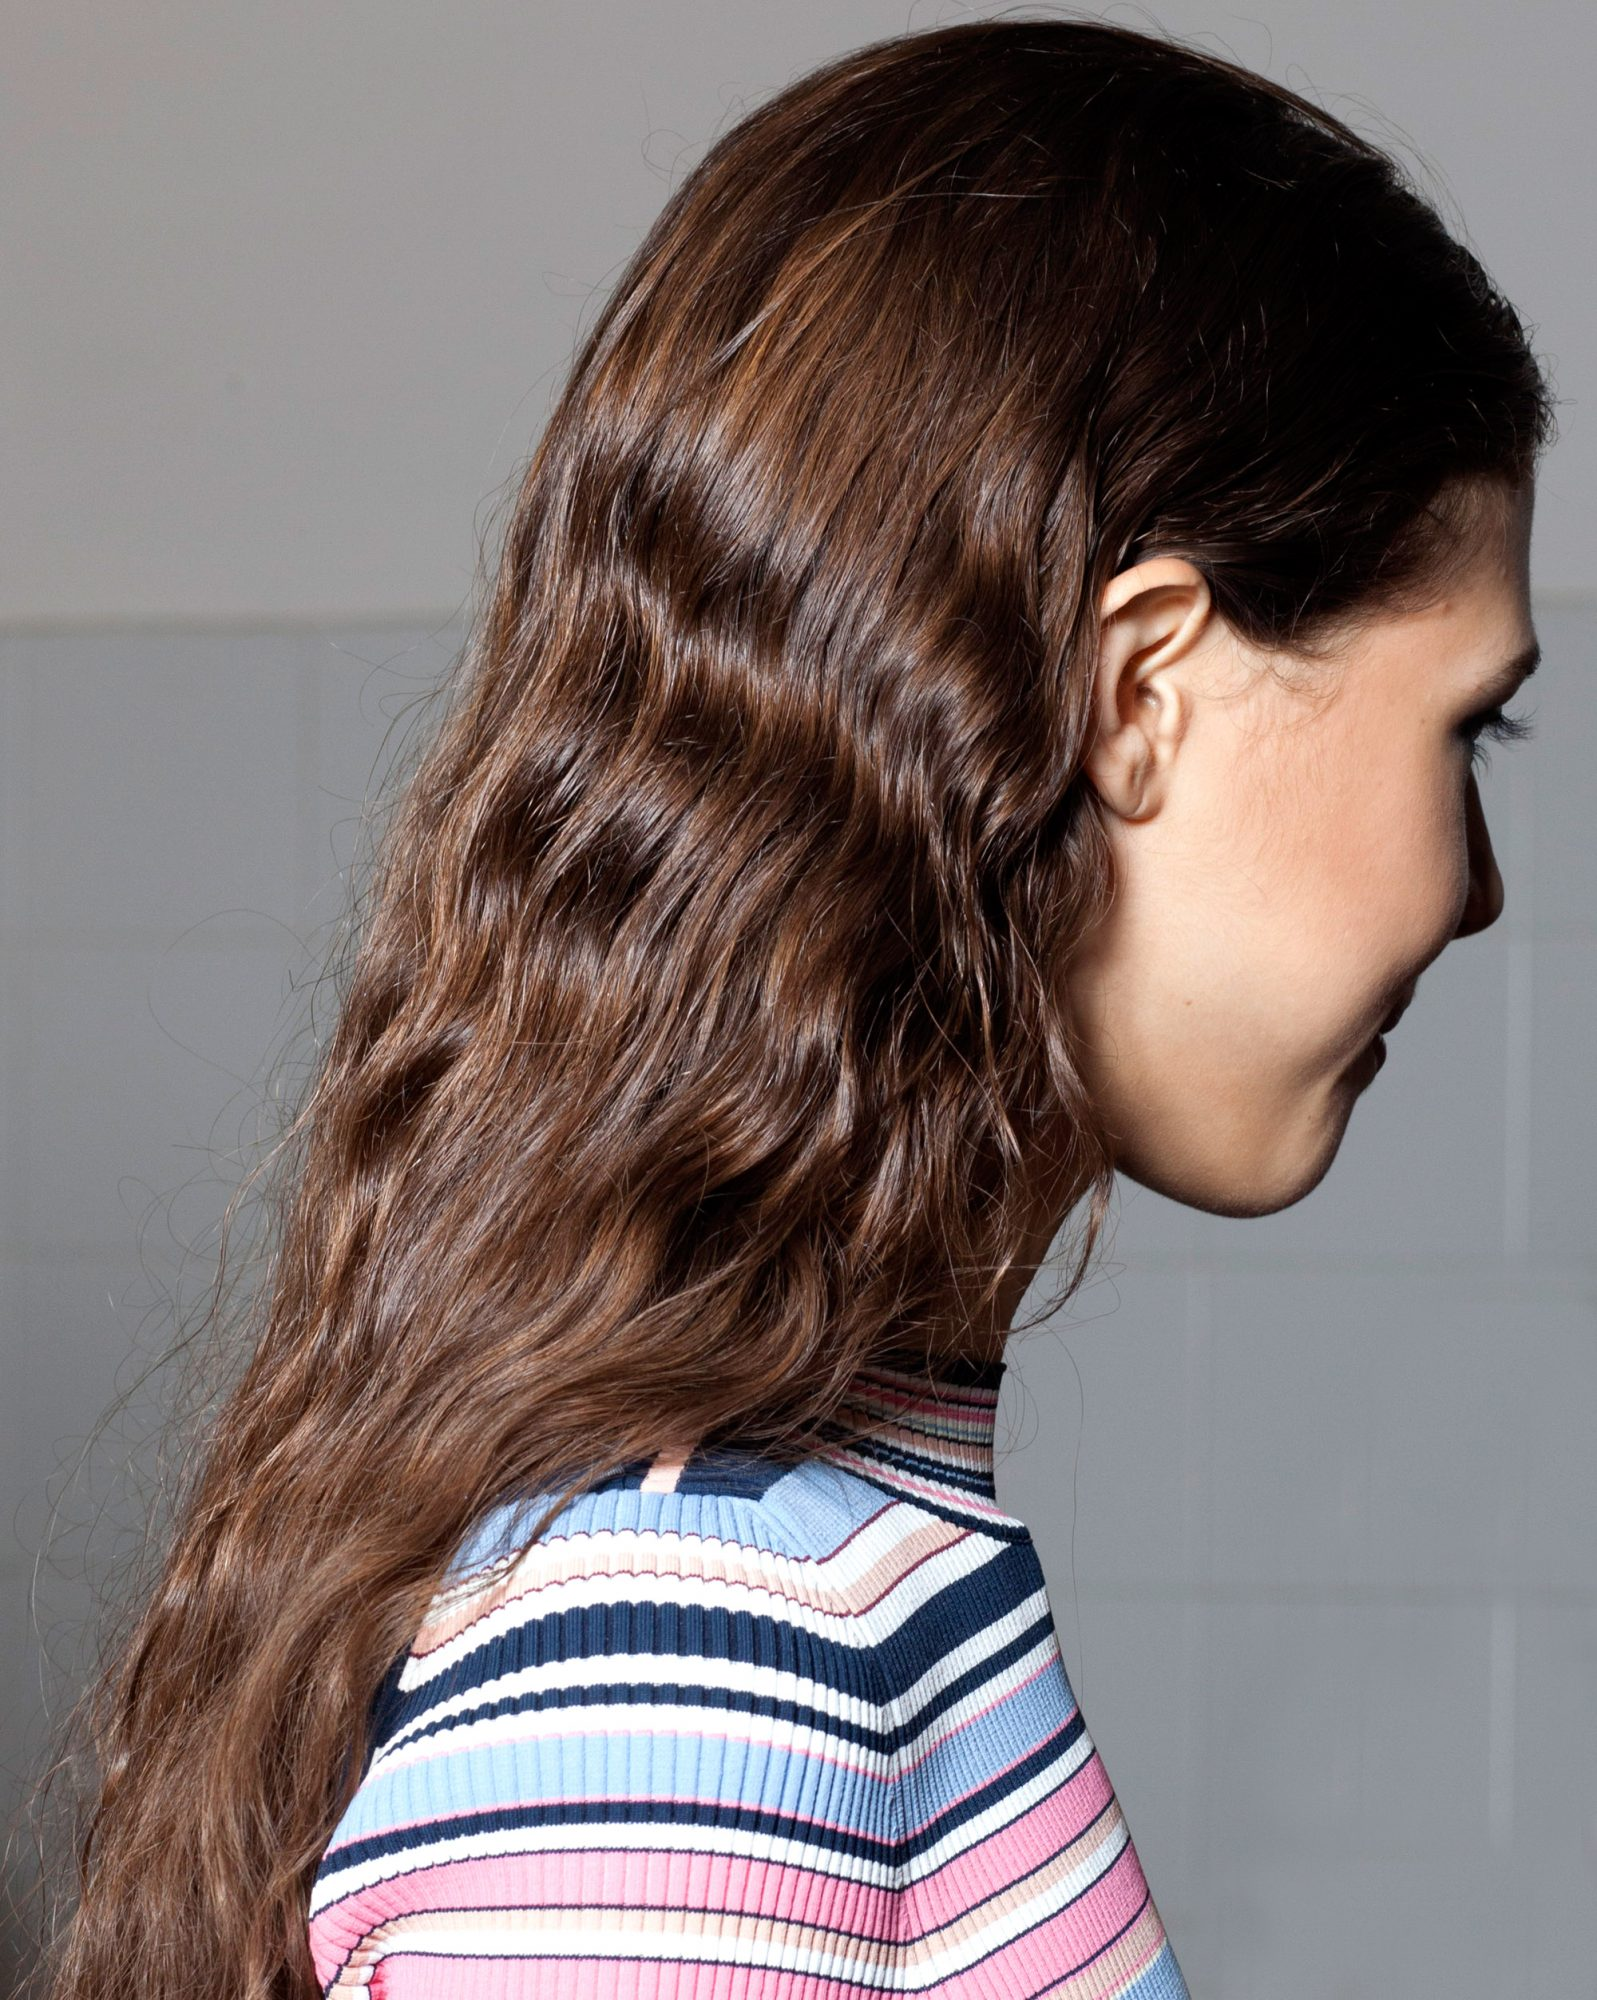 Blue Shampoo for Brown Hair - How to Get Rid of Brassiness | InStyle.com